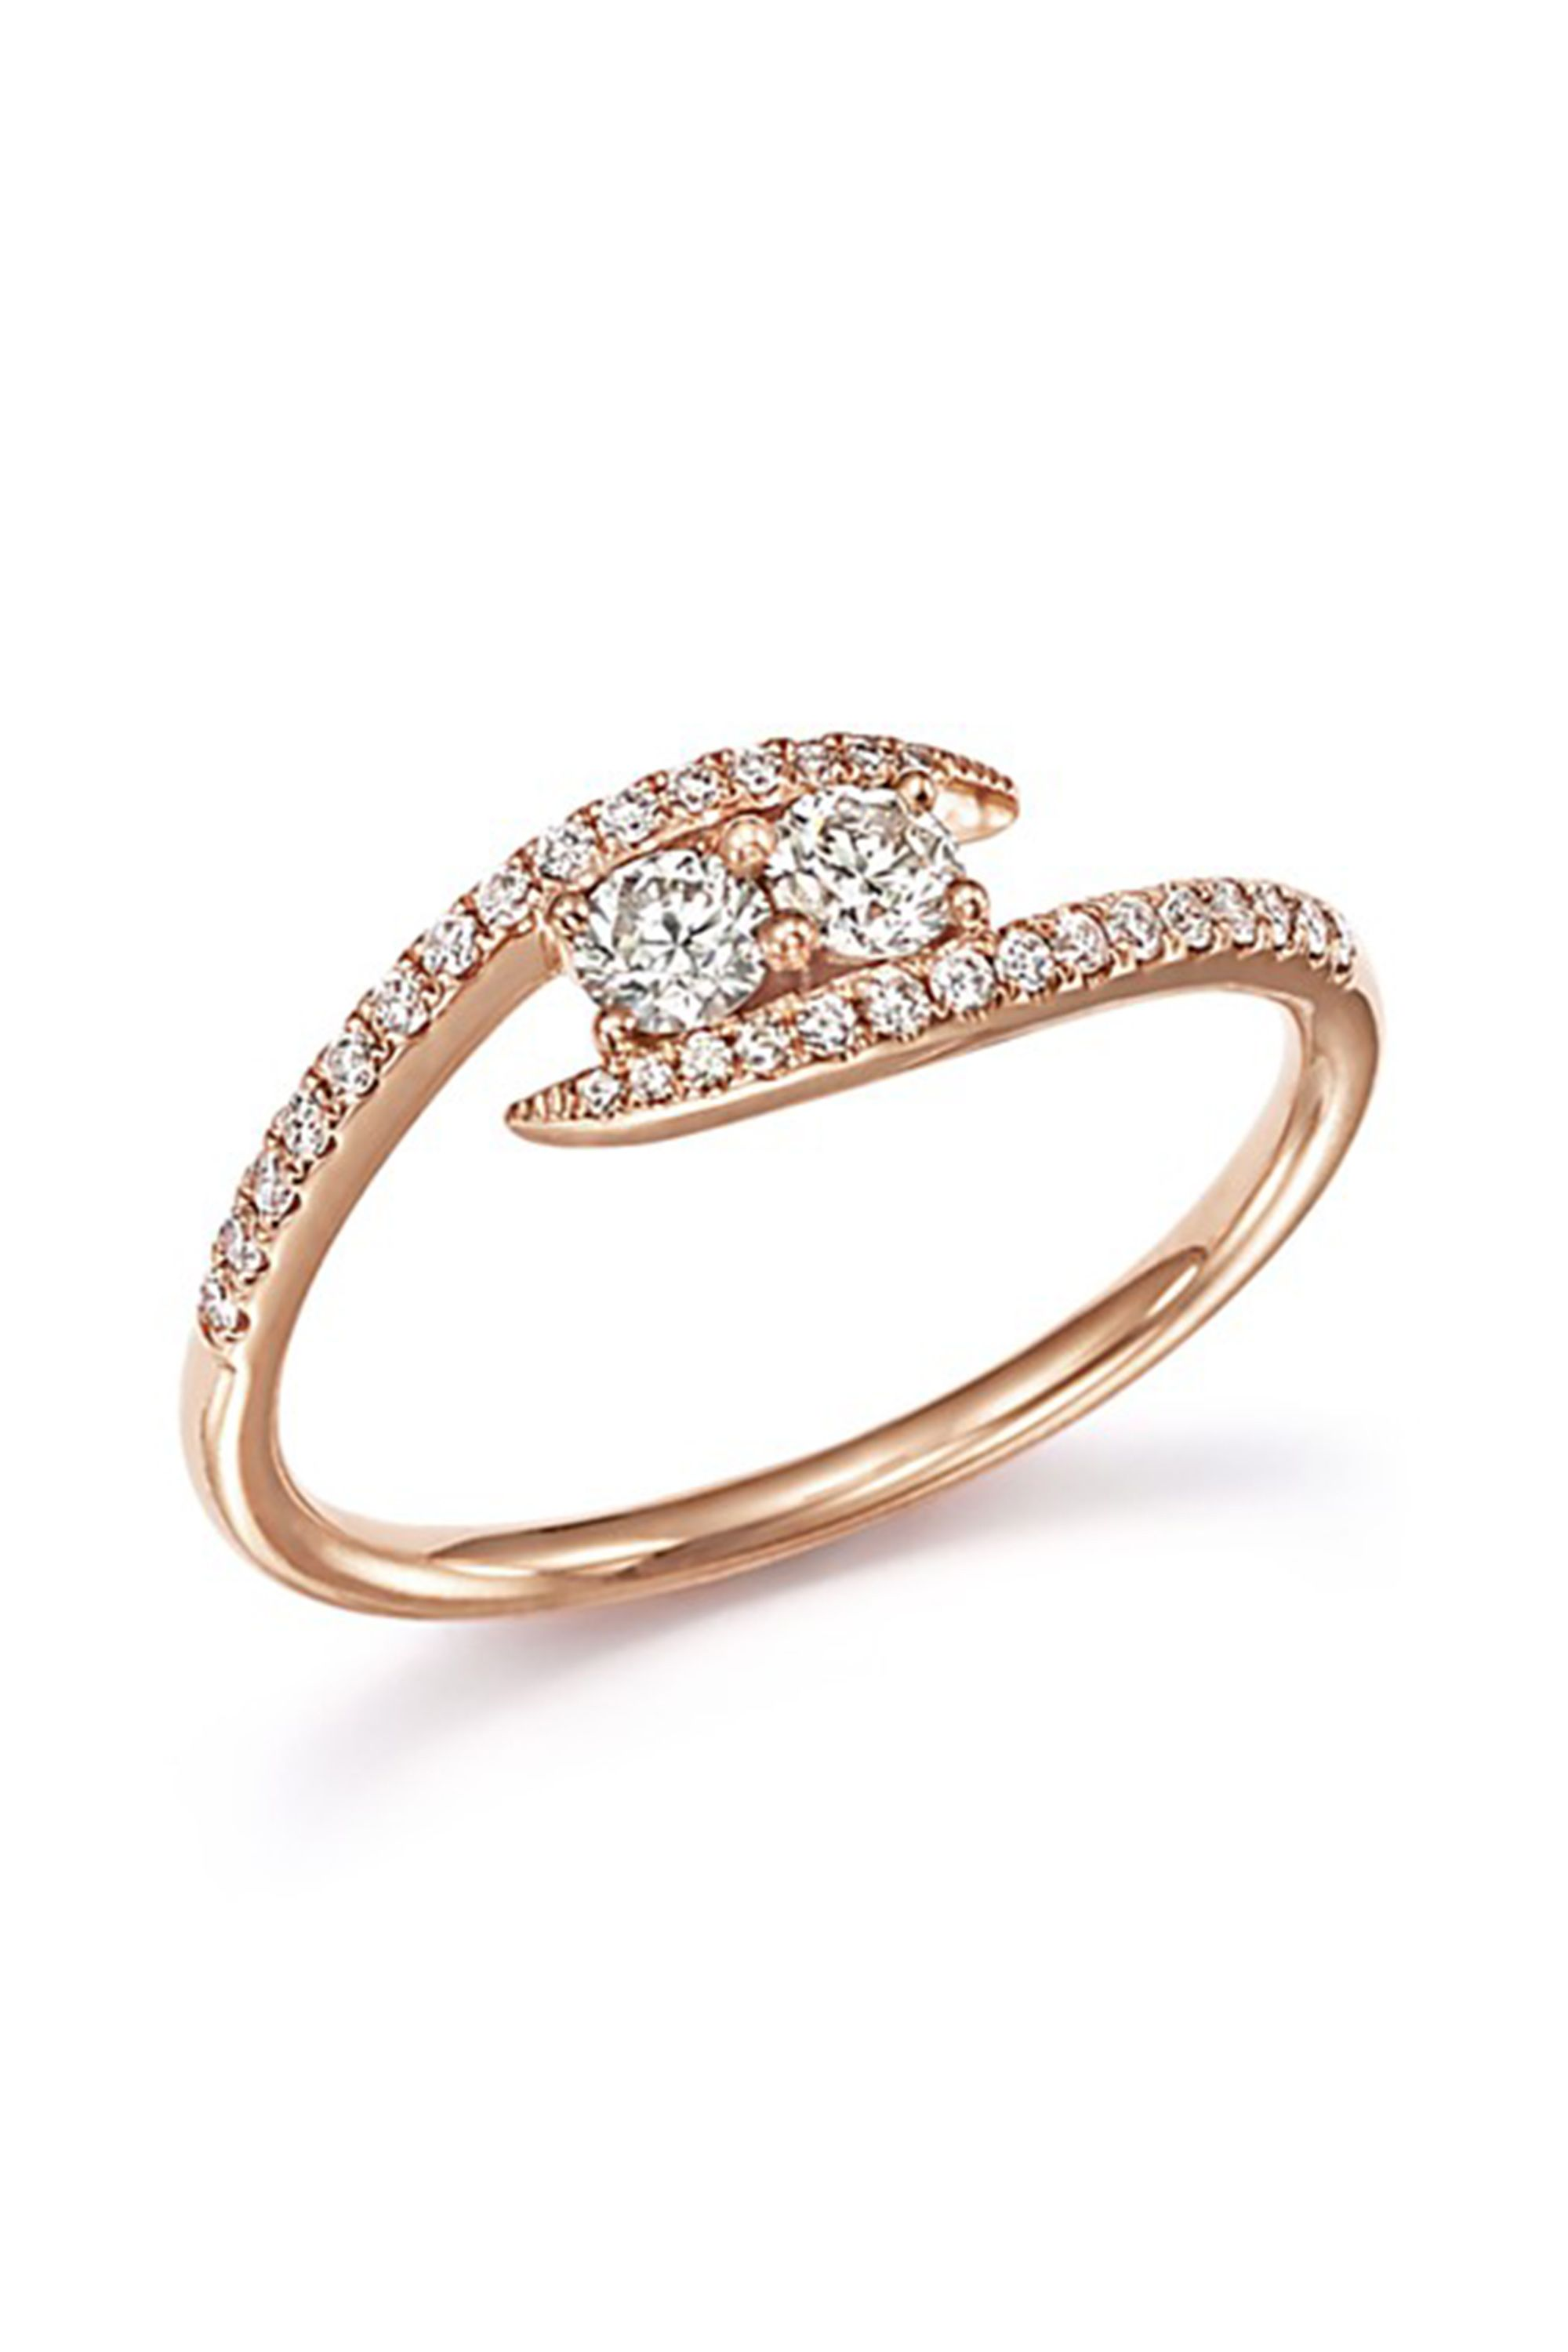 category rings style pave fashion band of halo twisted in cut adiamor rose wedding blog the and archives page gold